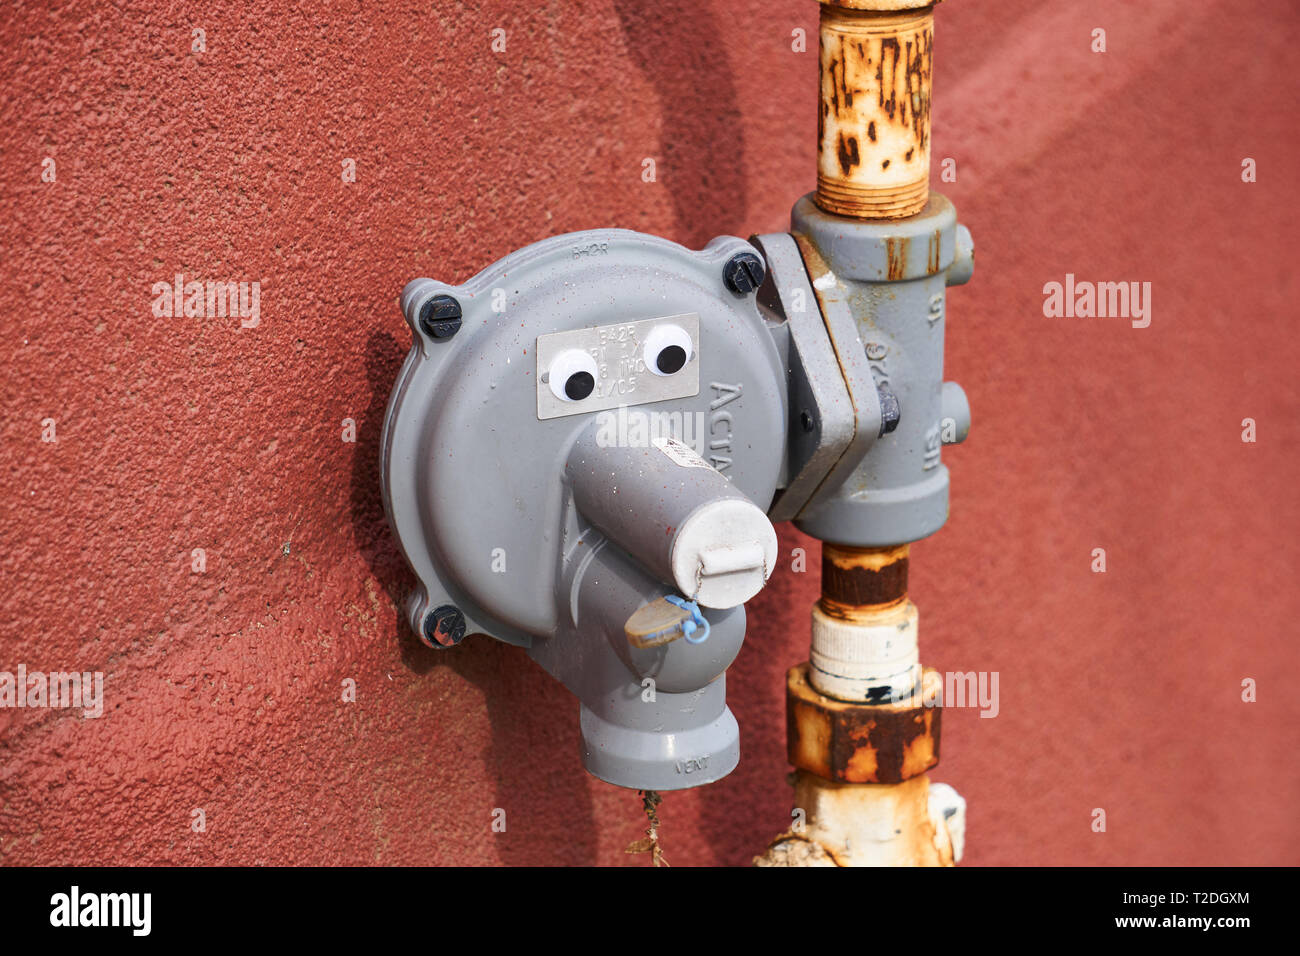 Pipes with googly eyes on them to make a funny face, outside a building with a red wall in Provo, Utah, USA. Stock Photo